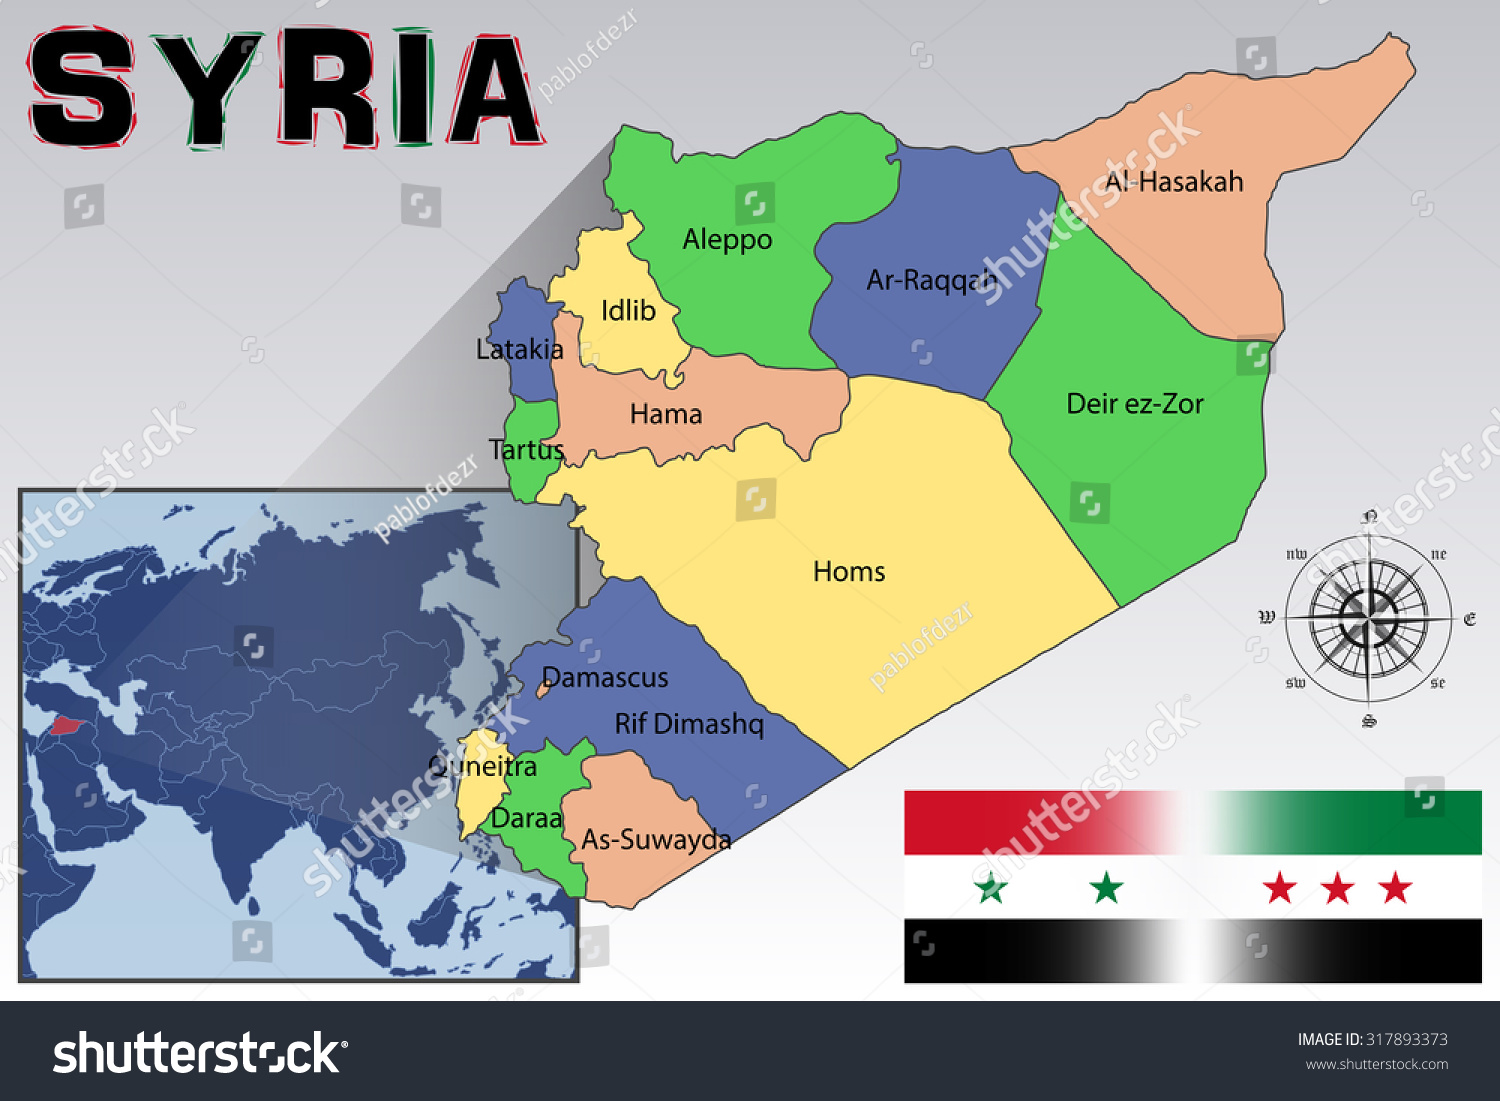 Map Flag Location Syria Stock Vector Shutterstock - Where is syria located on the map